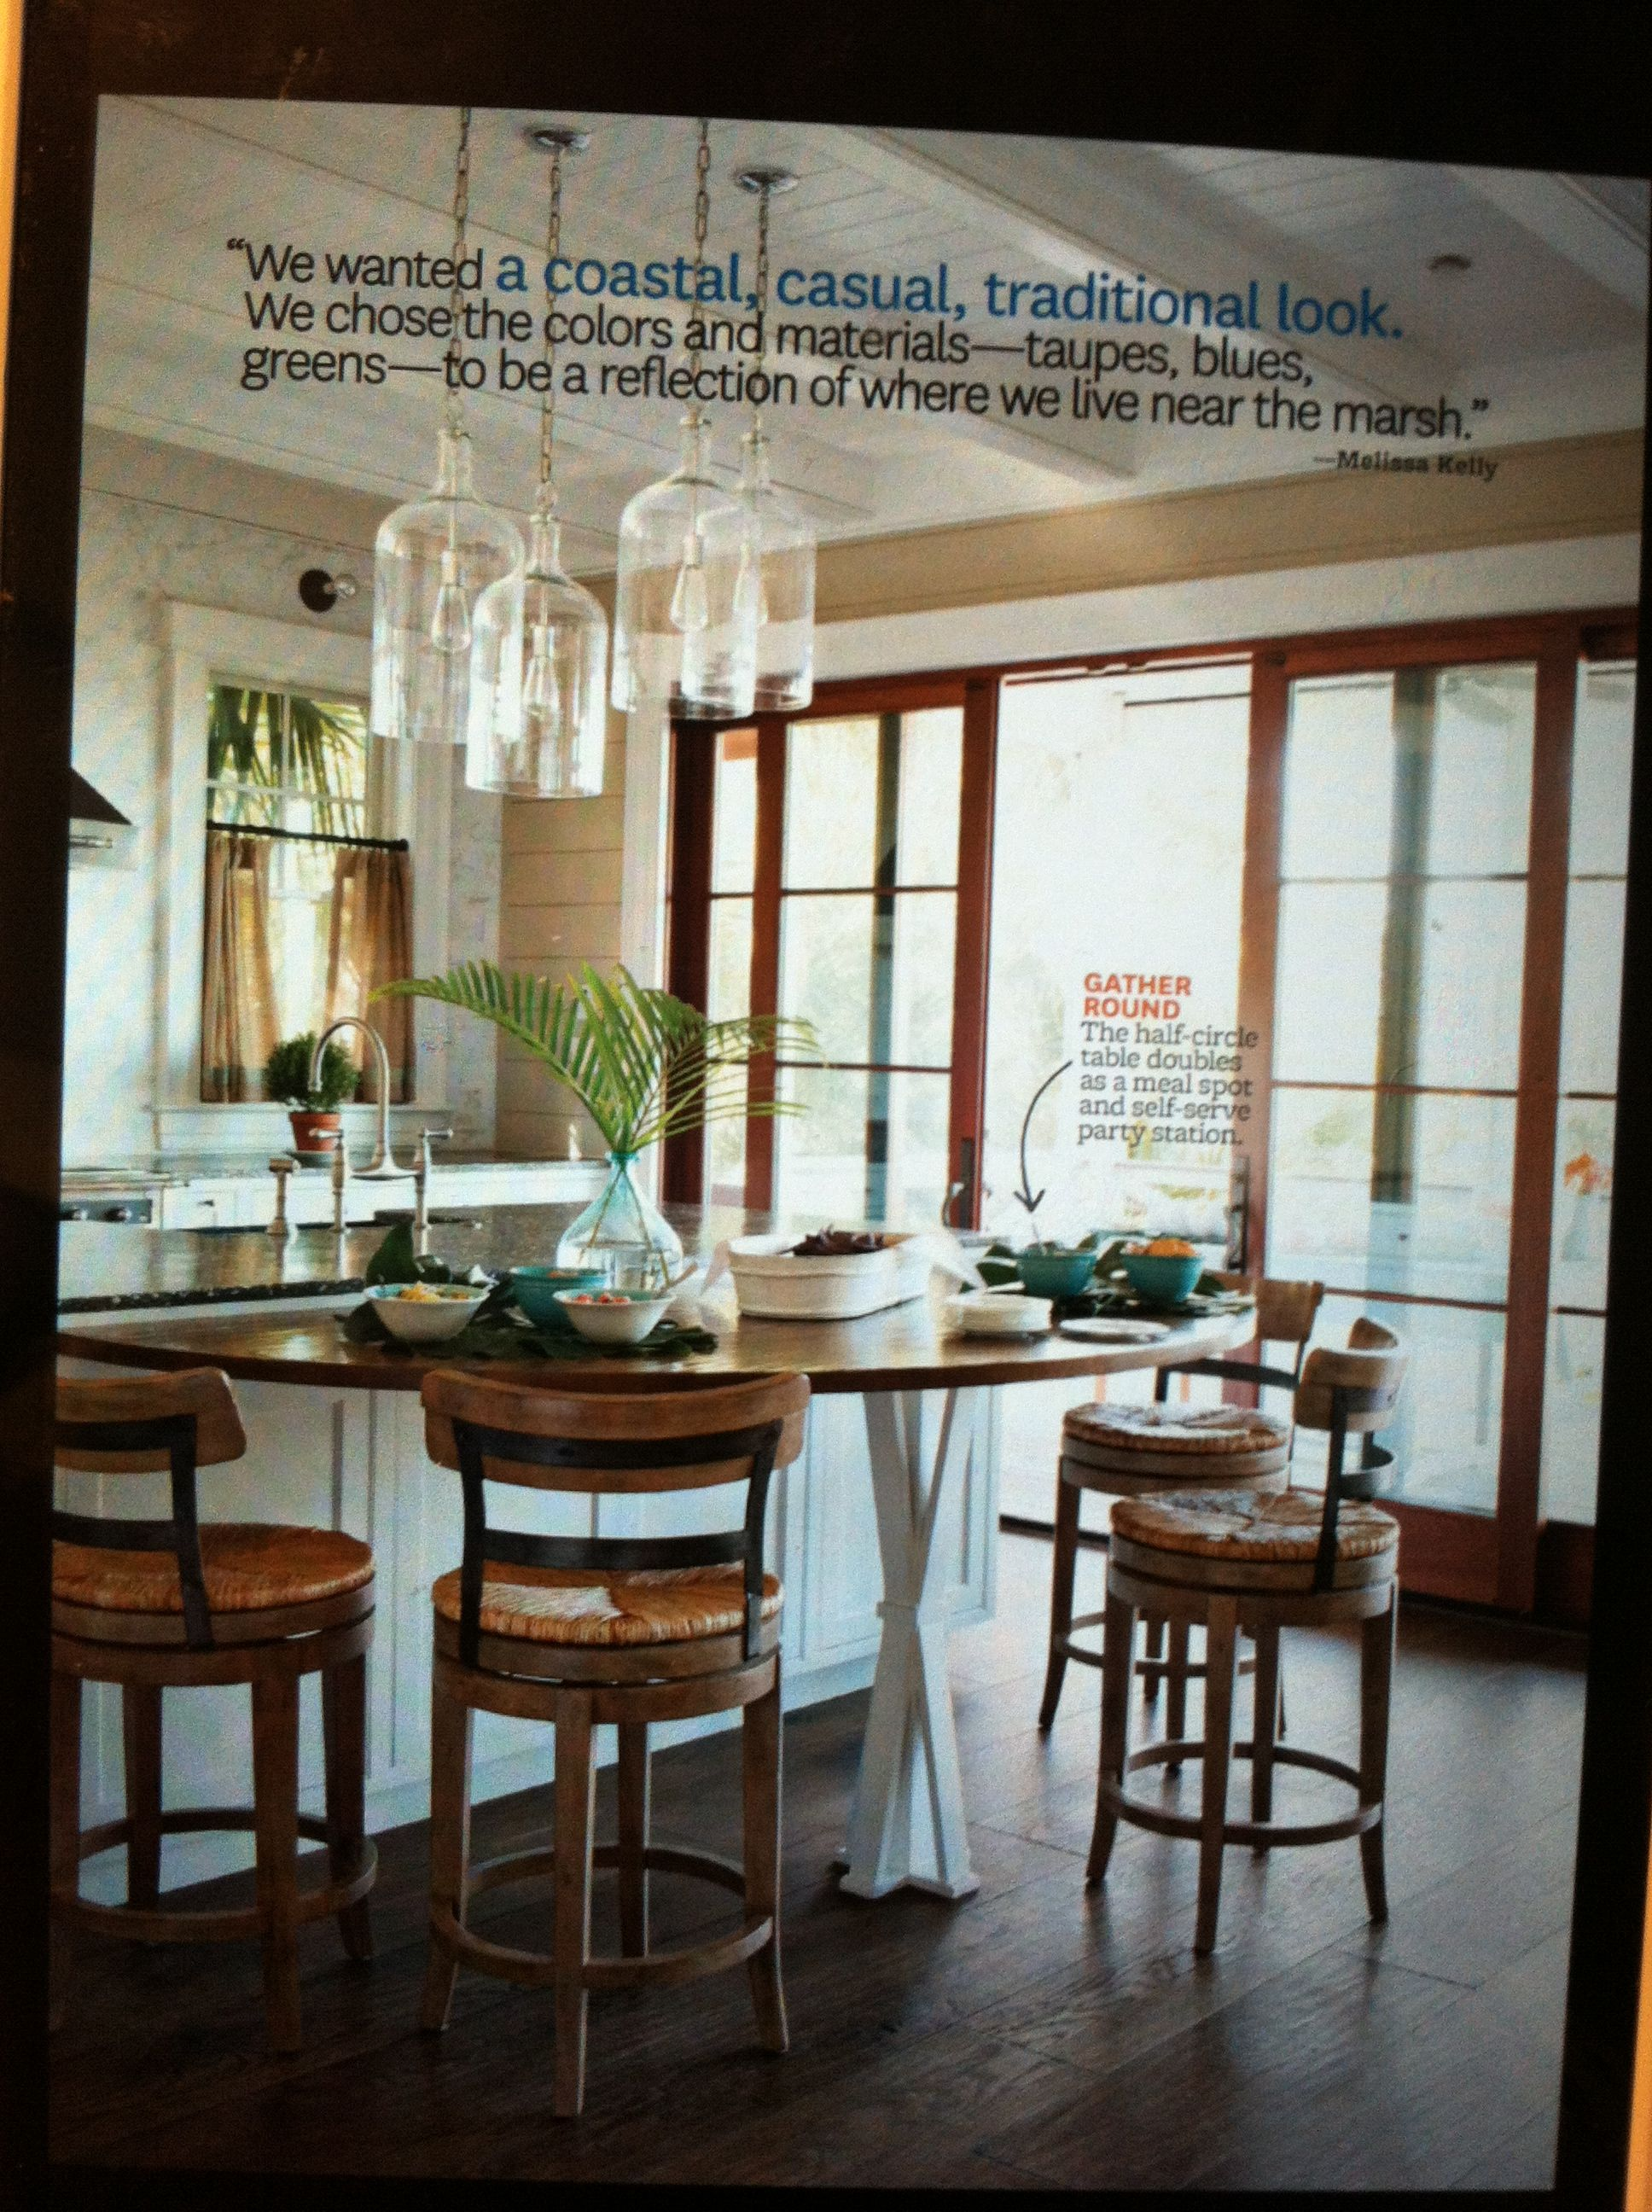 Half Circle Table Connected To Kitchen Counter Better Homes Gardens Magazine I Love This As A Possible Add On For Our Ki Home Kitchens Home Kitchen Remodel